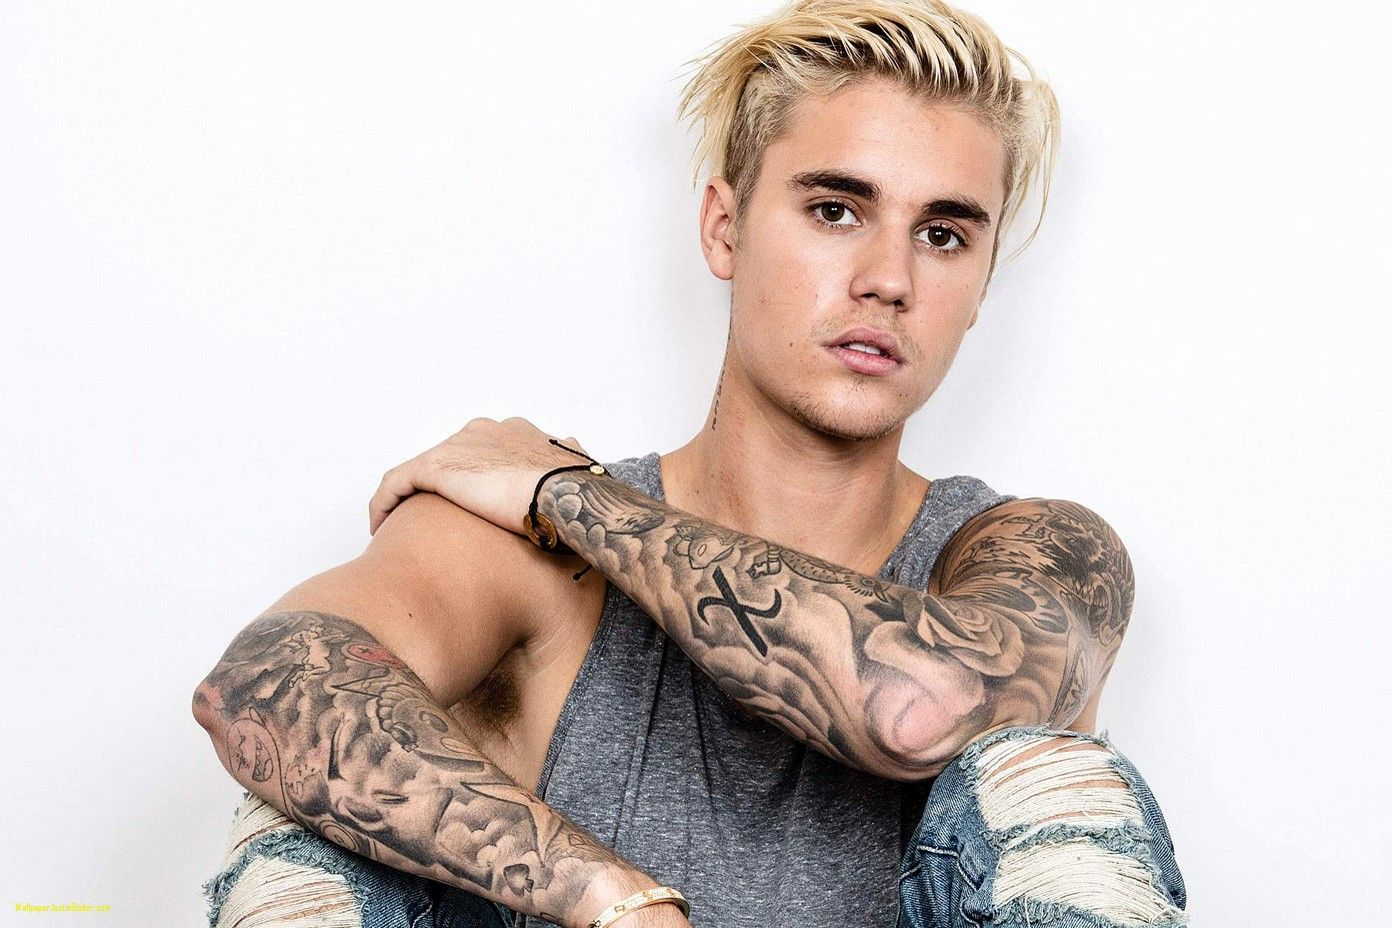 justin bieber new song images Archives - Wallpaper Justin Bieber ...